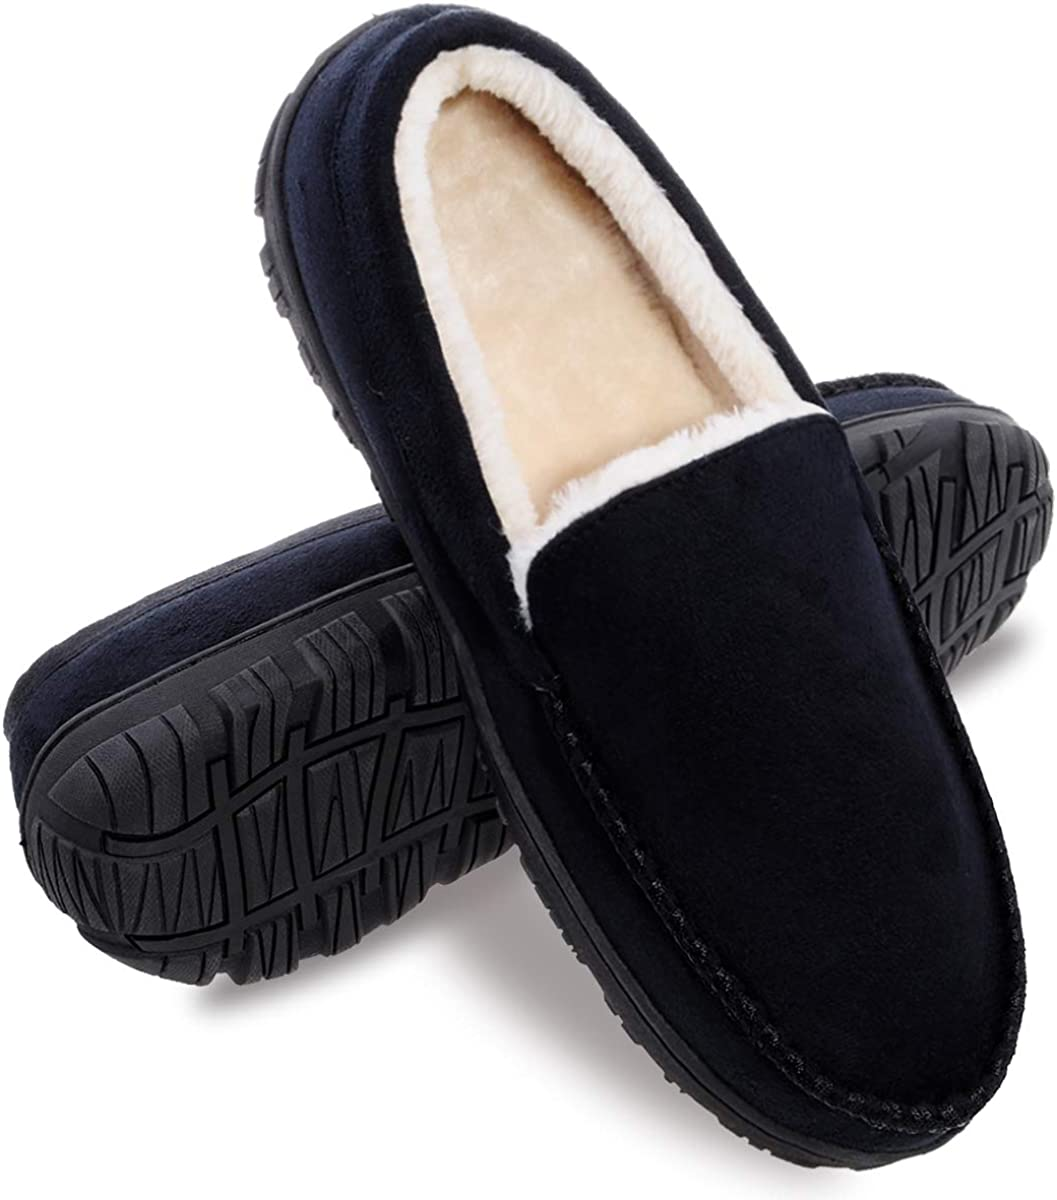 Amazon.com | festooning Mens Slippers, House Shoes with Memory Foam,  Moccasin Slipper for Men with Anti-Skid Rubber Sole Indoor/Outdoor |  Slippers